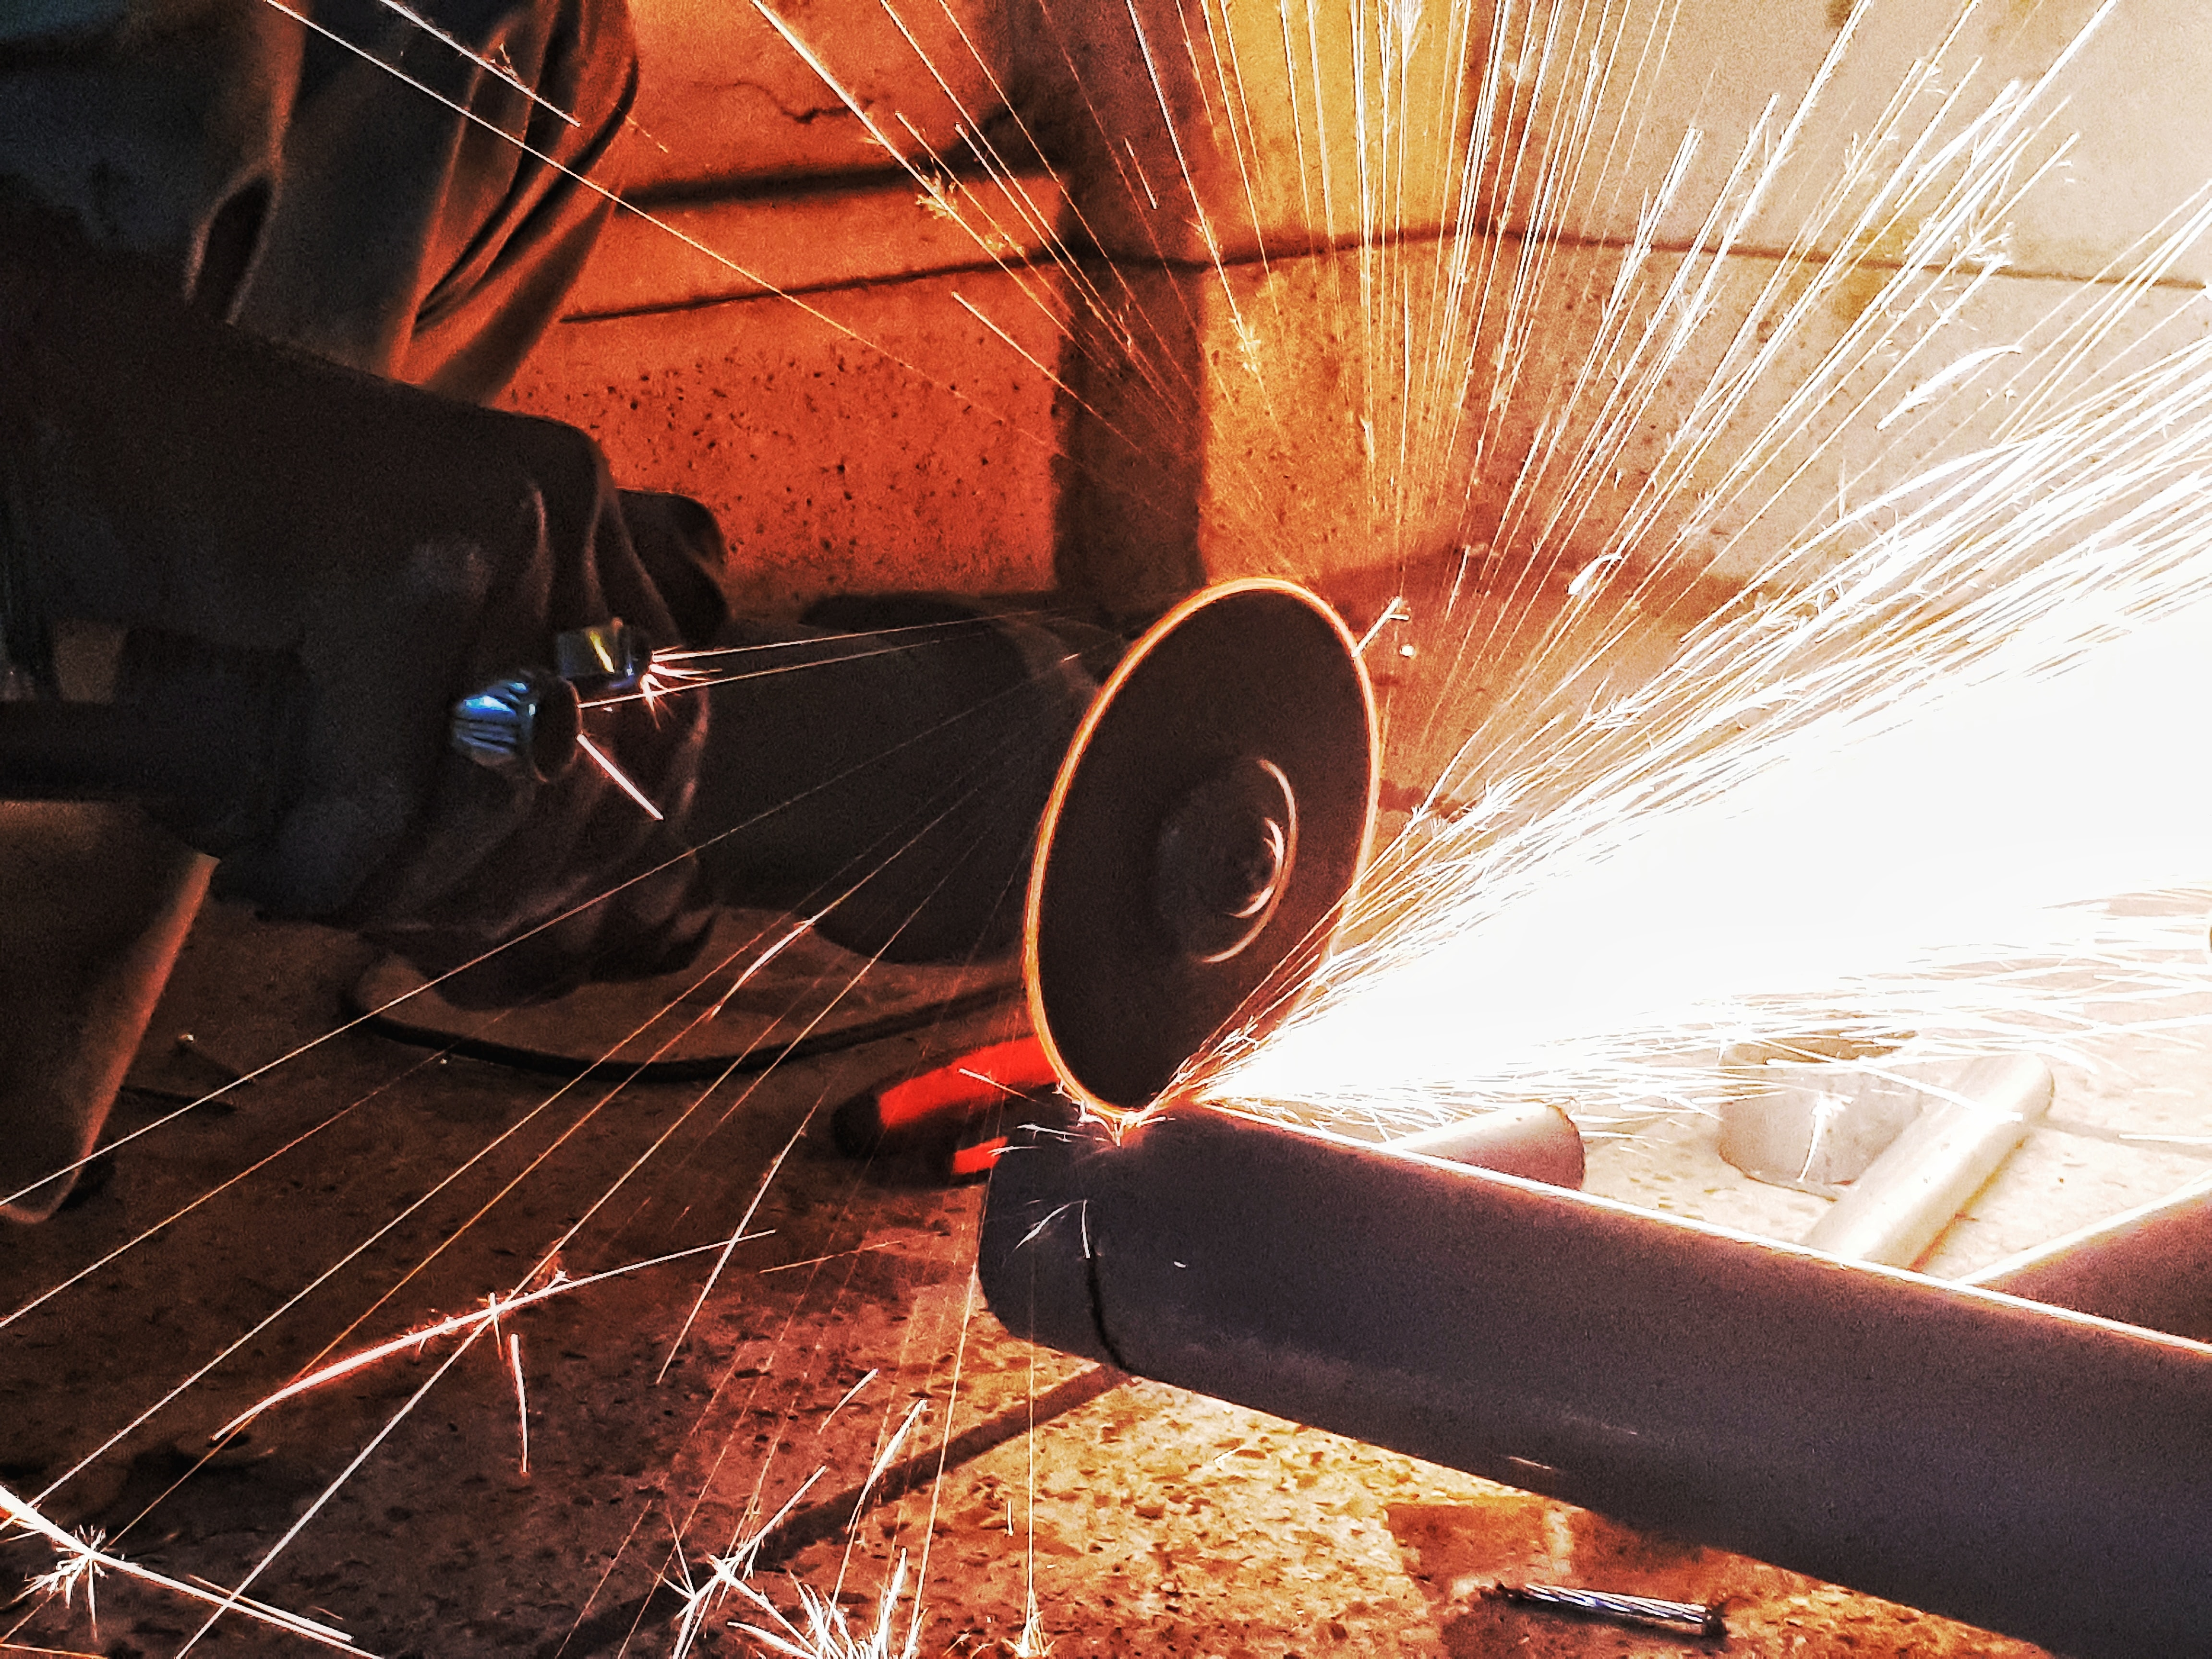 person grinding pipe steel wool photography